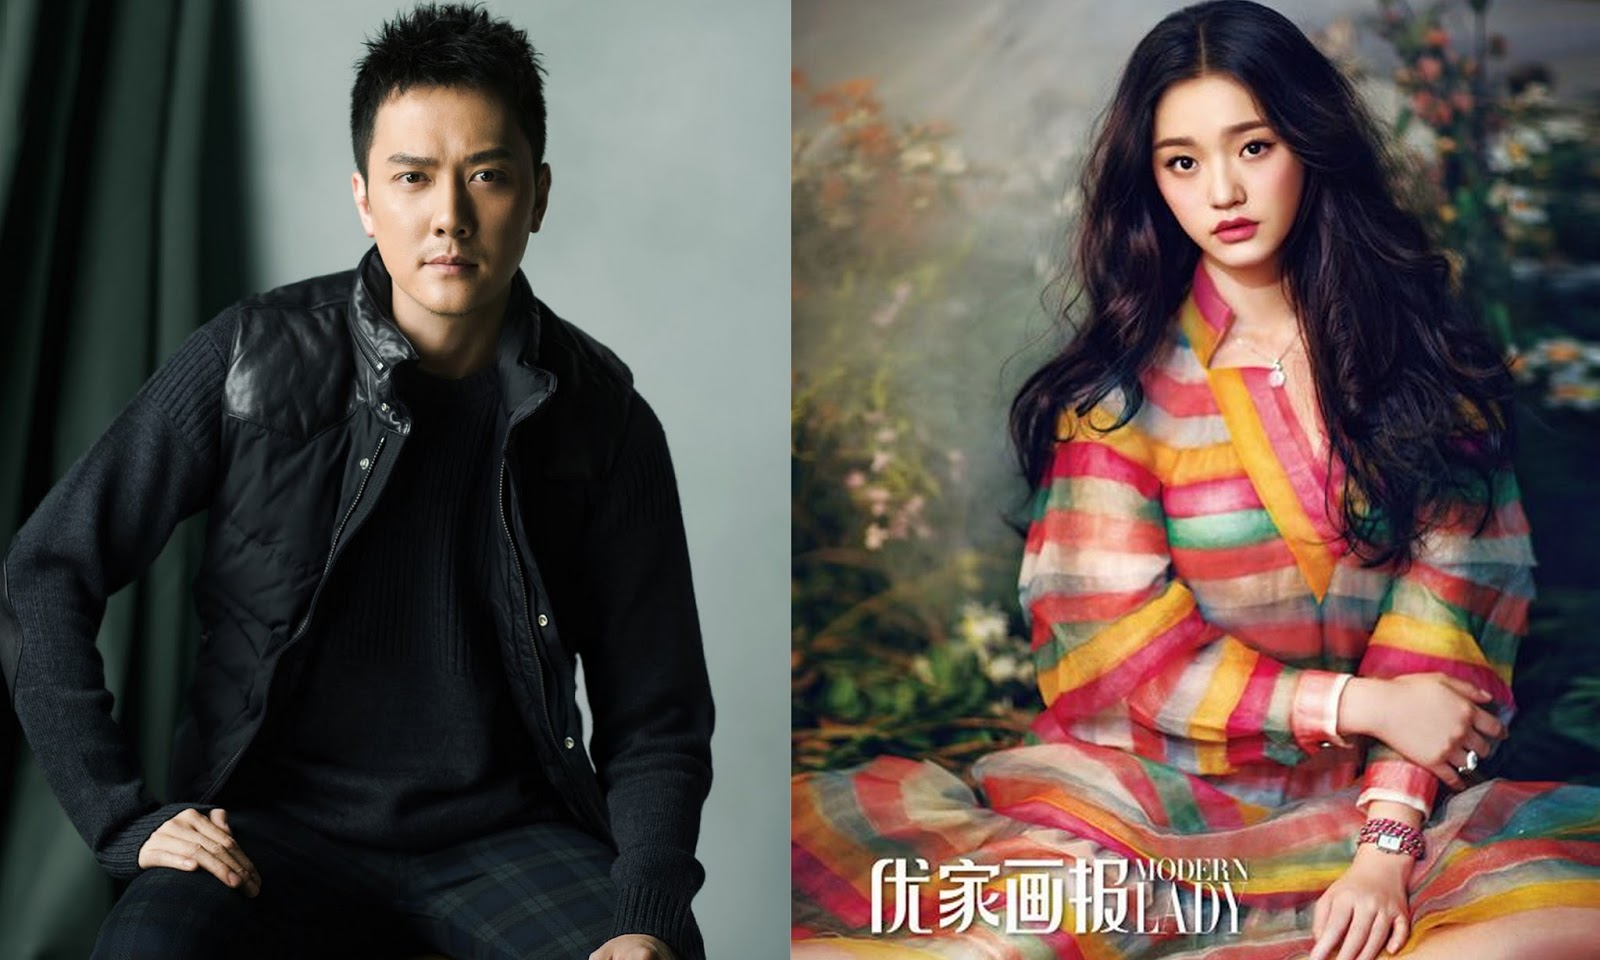 Jing boran and zheng shuang dating after divorce